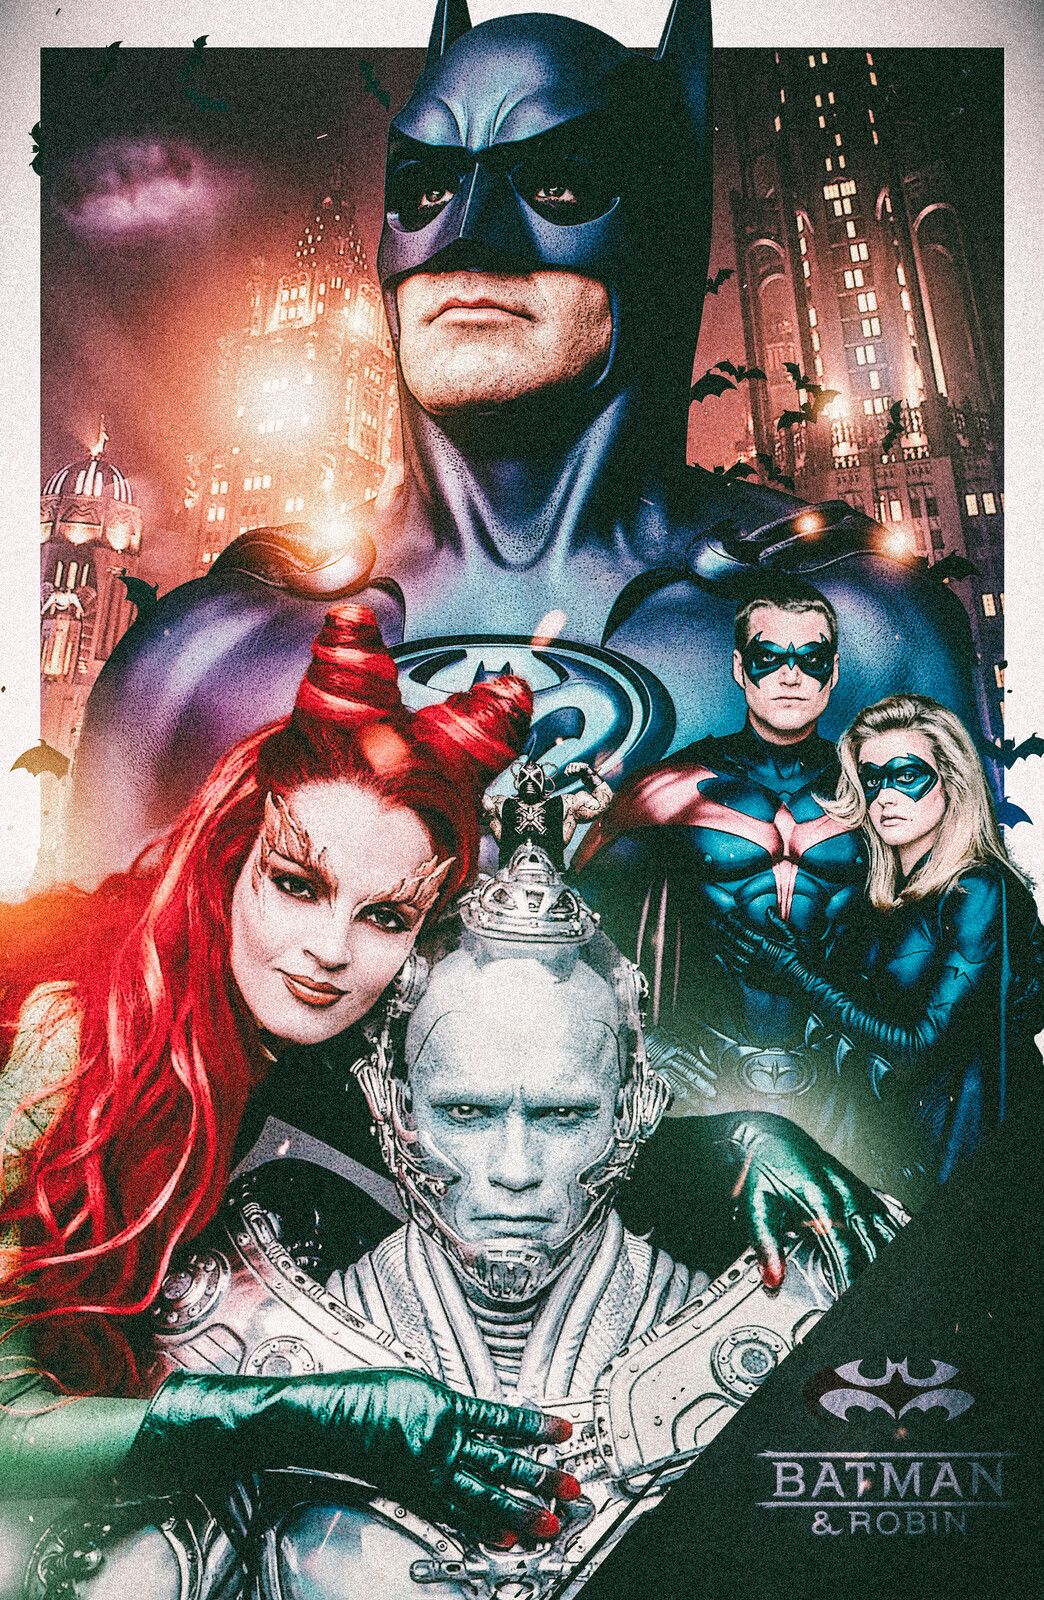 Batman and Robin Alternate Movie Poster by The Movie Poster Guy, Neemz